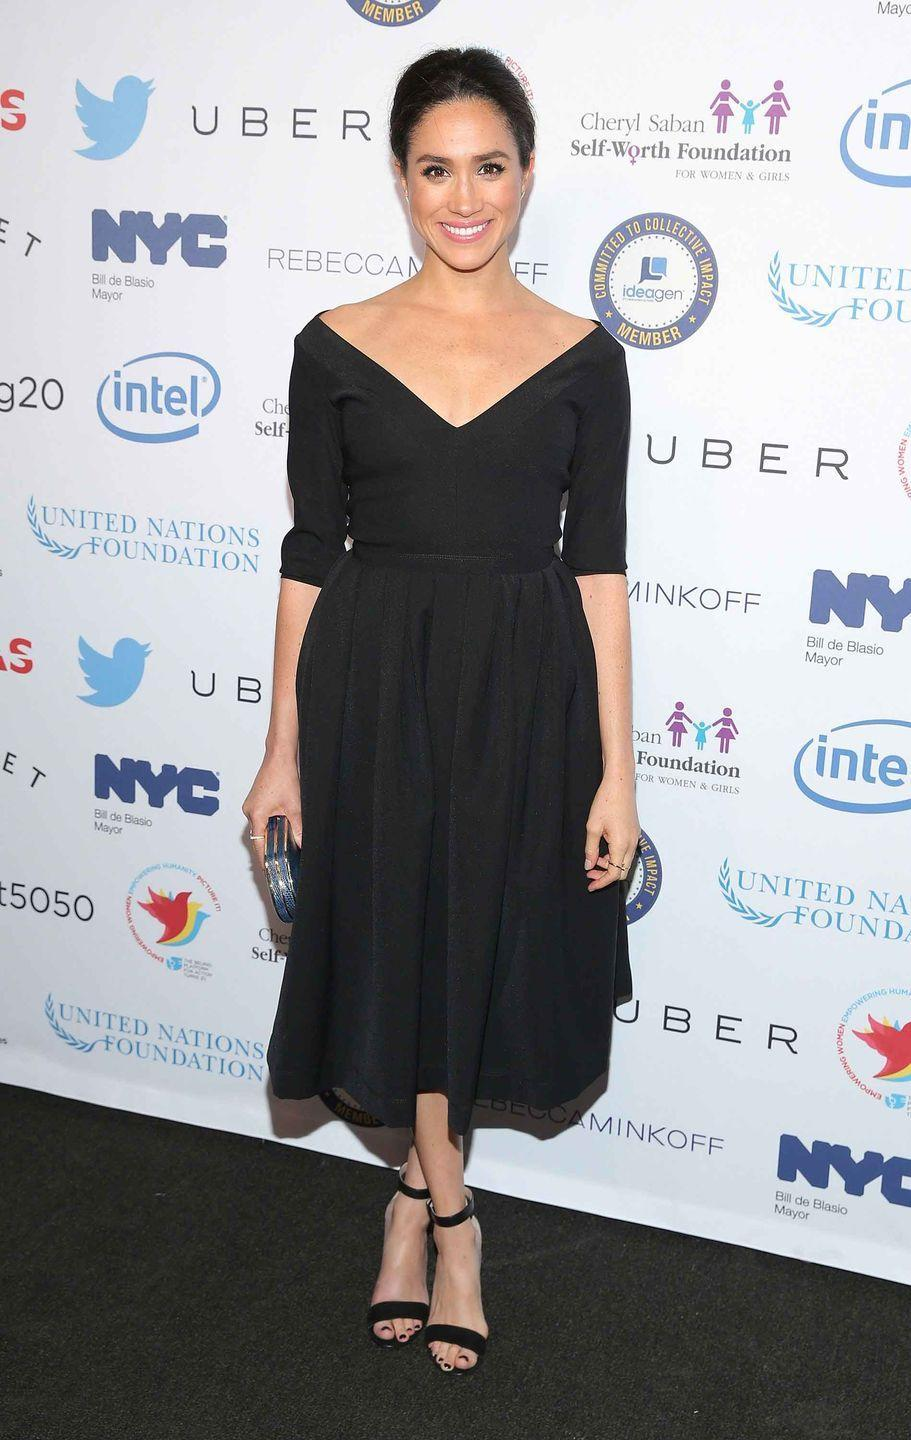 <p>Attending the Step It Up for Gender Equality event at the Hammerstein Ballroom in New York City.</p>